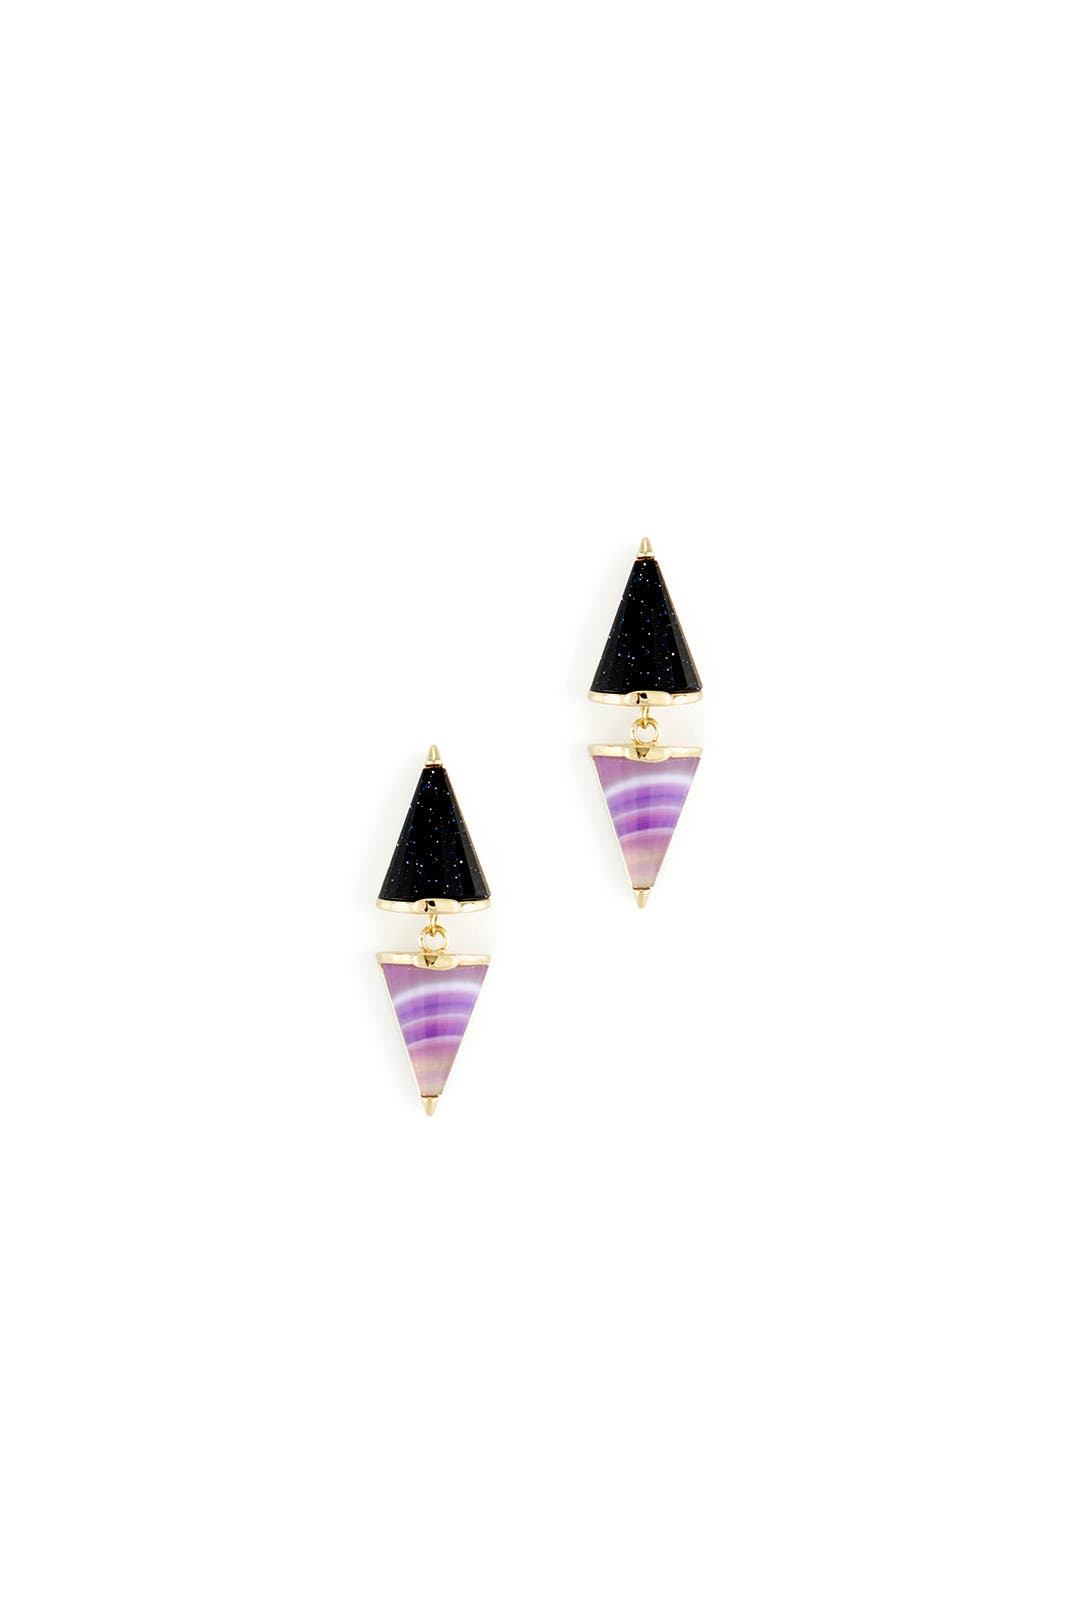 Cosmic Mini Cone Earrings by Sarah Magid